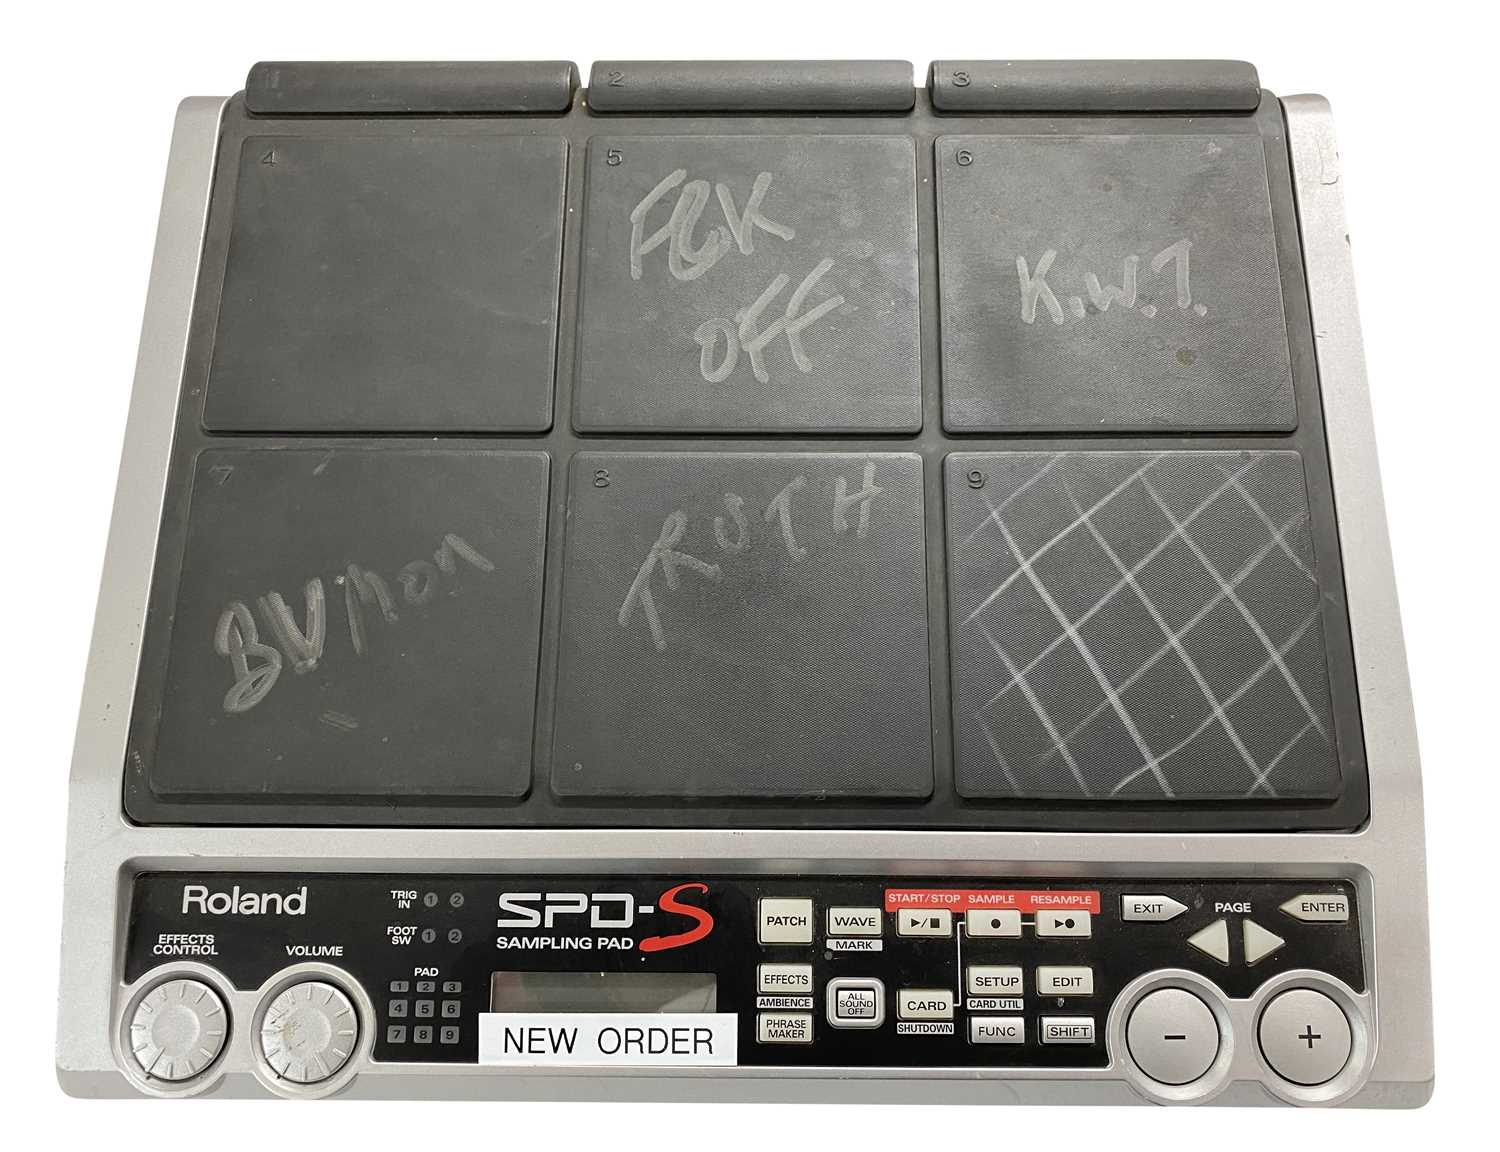 ROLAND DRUM ELECTRONIC SPD-S DRUM SAMPLING PADS x 2 - Image 3 of 4